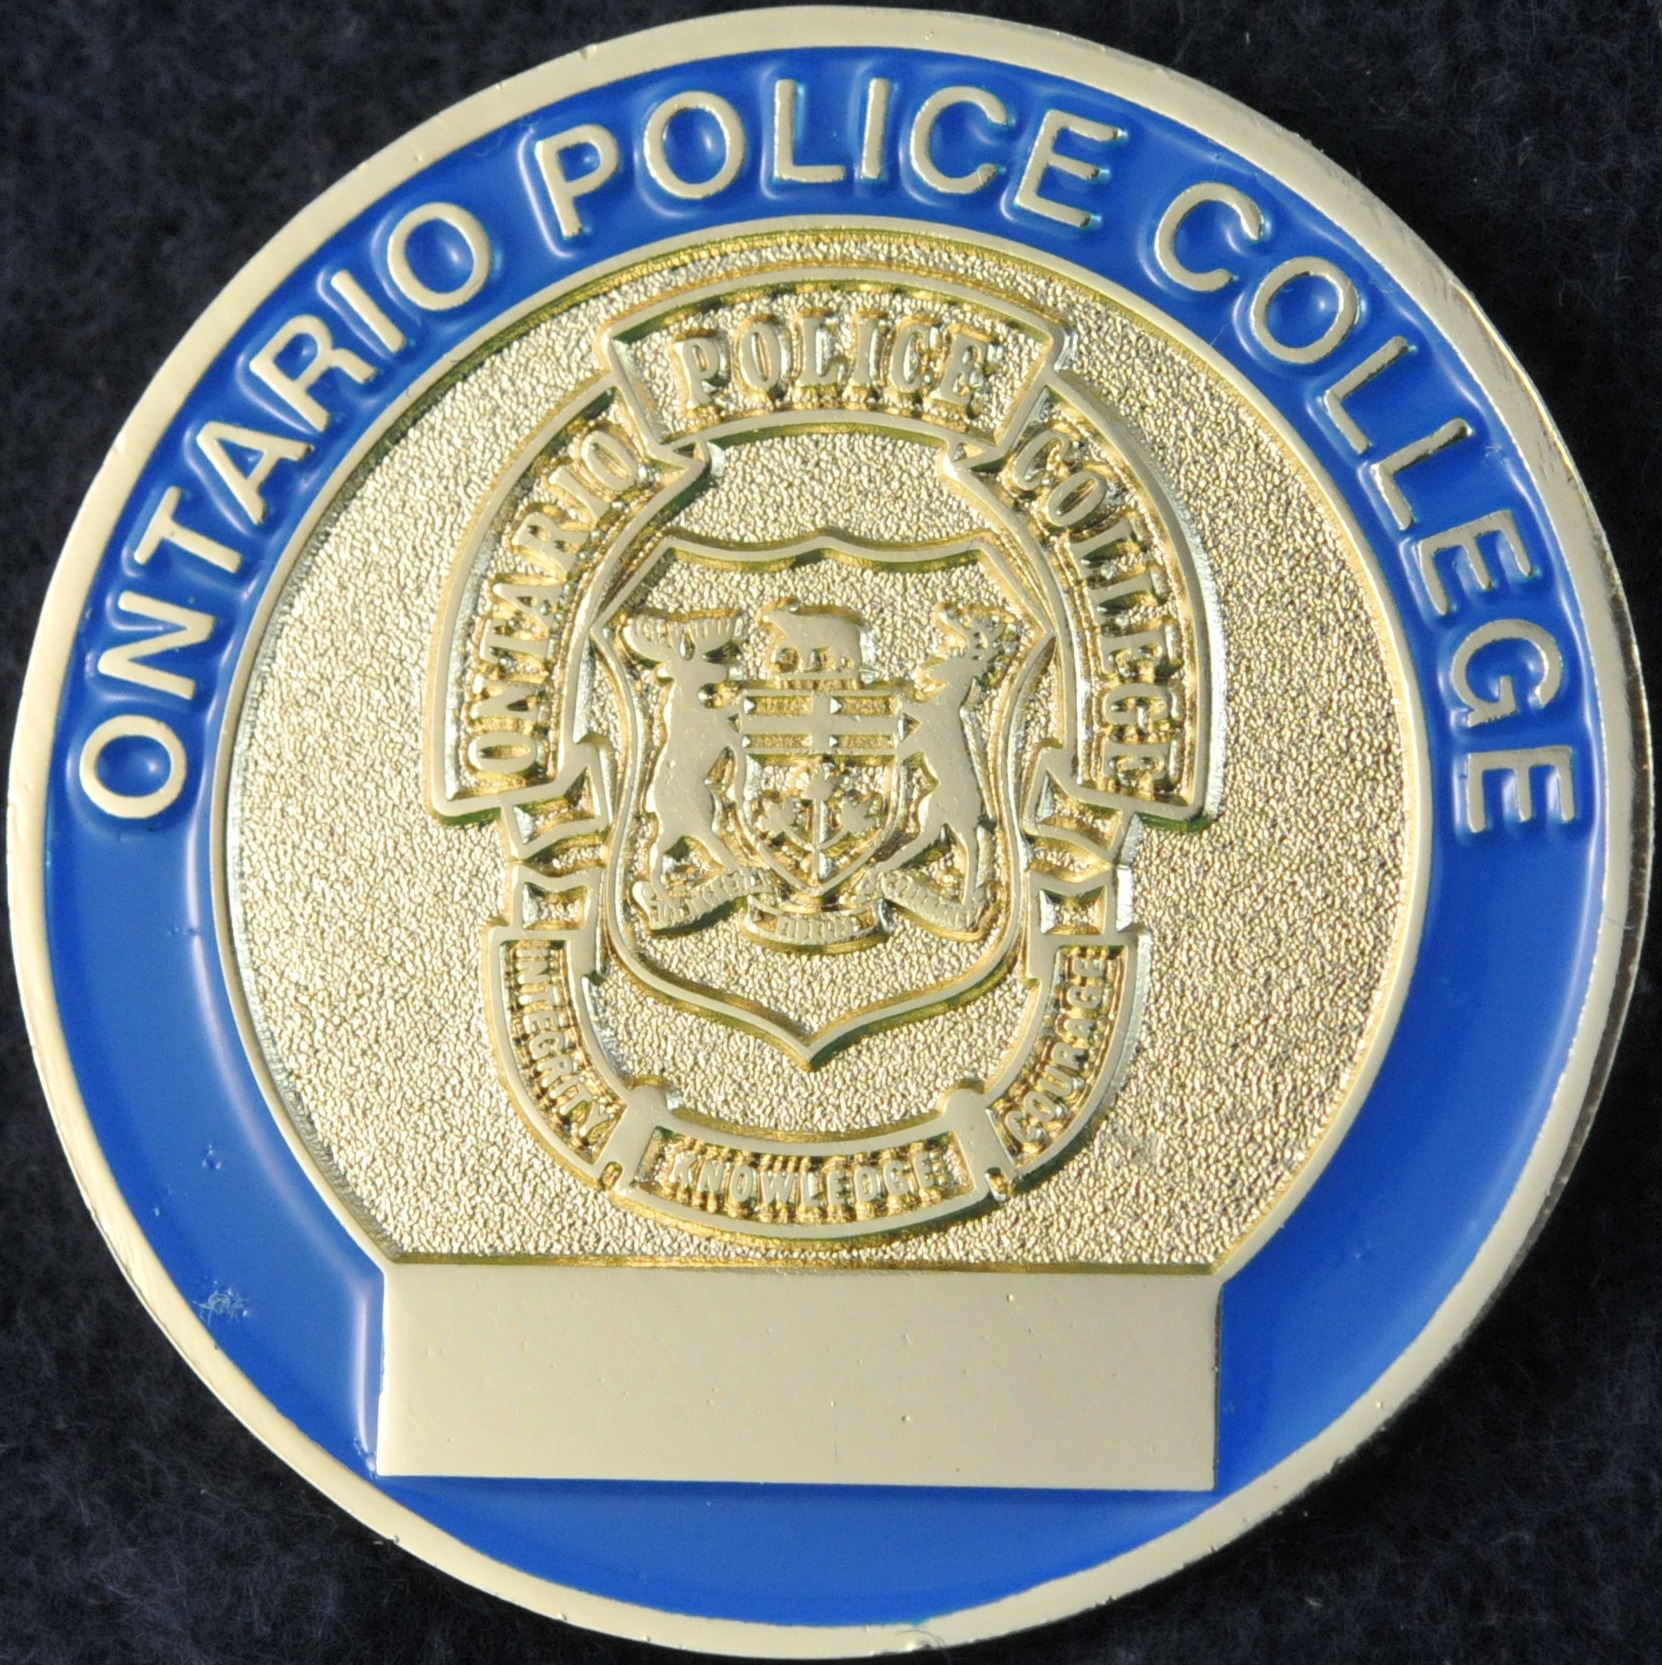 police in ontario Police department non emergency phone number in ontario on ypcom see reviews, photos, directions, phone numbers and more for the best police departments in ontario, ca start your search by typing in the business name below.